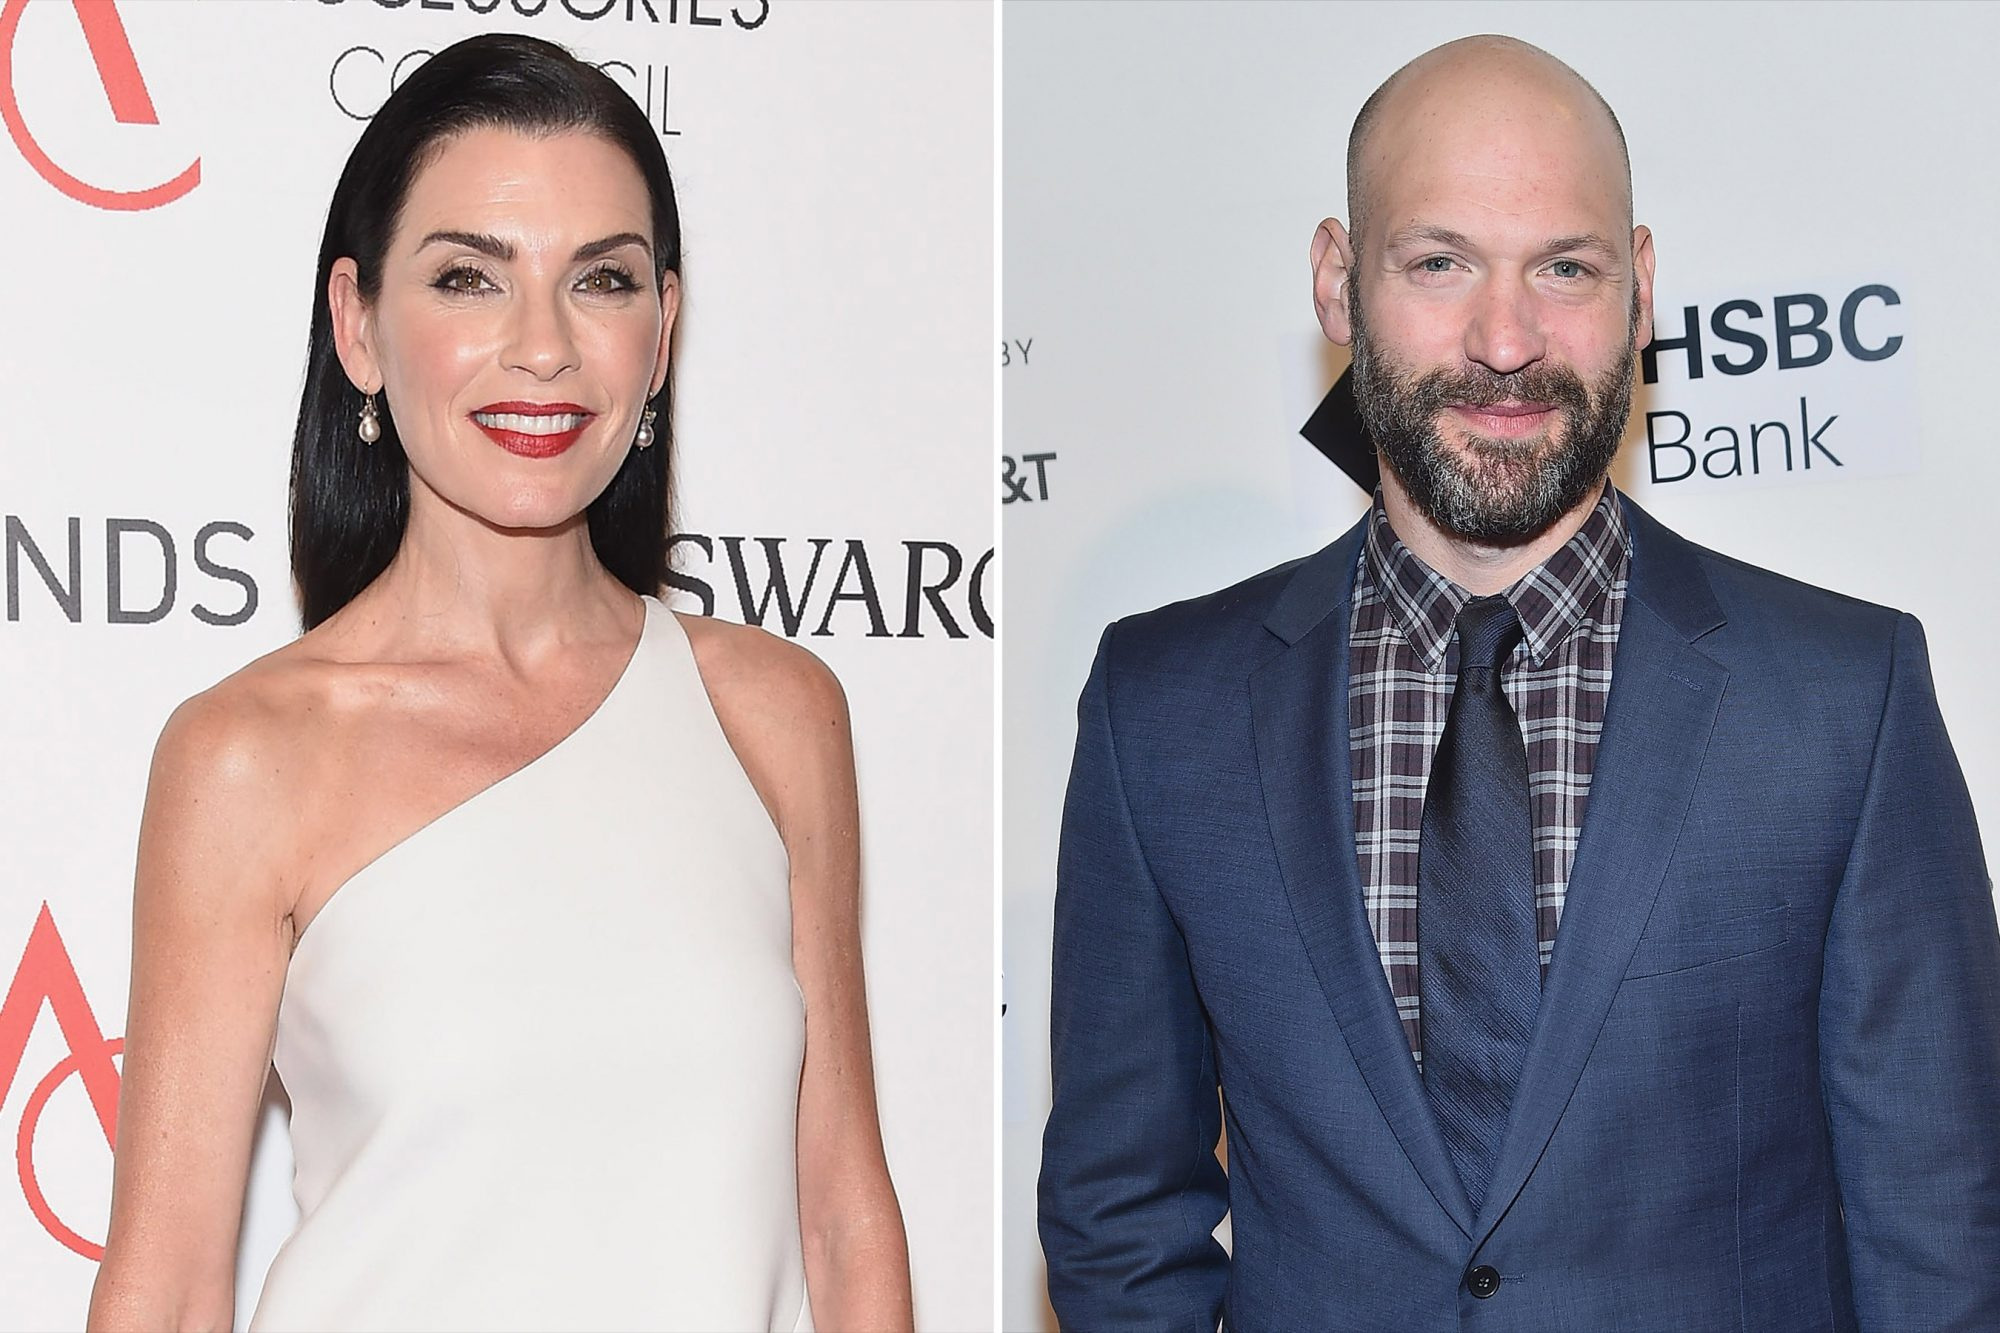 Julianna-Marguiles-and-Corey-Stoll